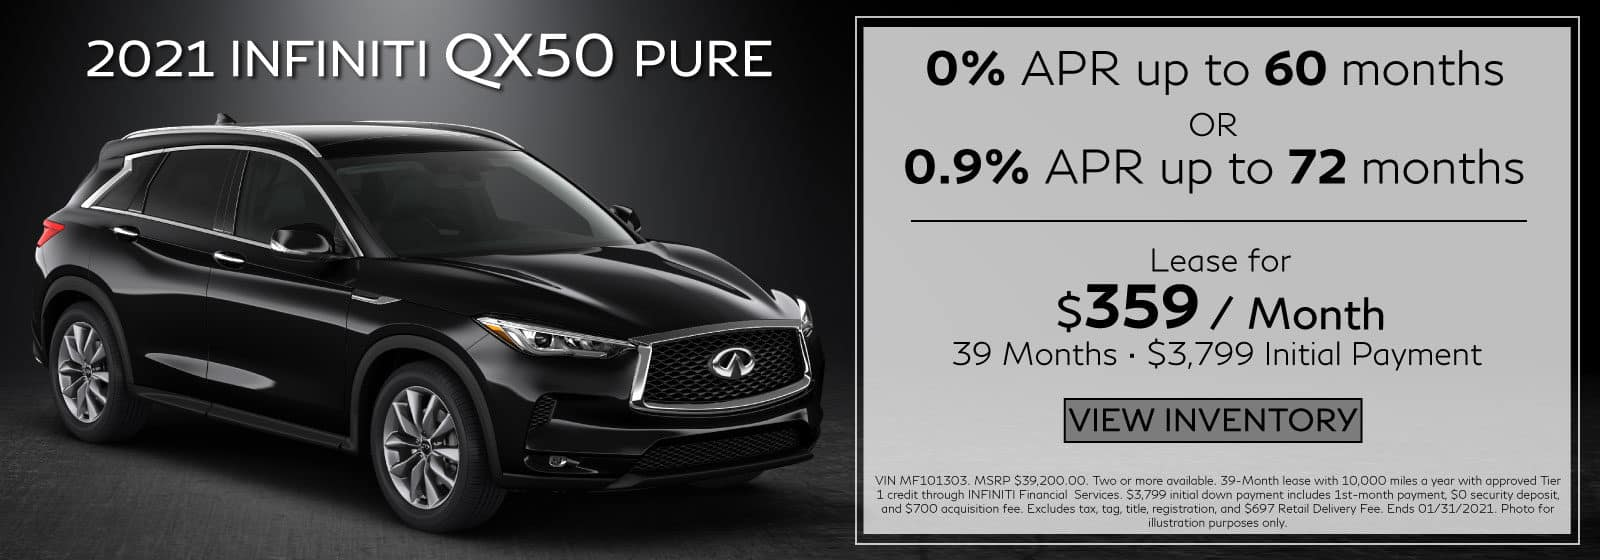 2021 QX50 PURE. $359/mo for 39 months. $3,799 Initial Payment.